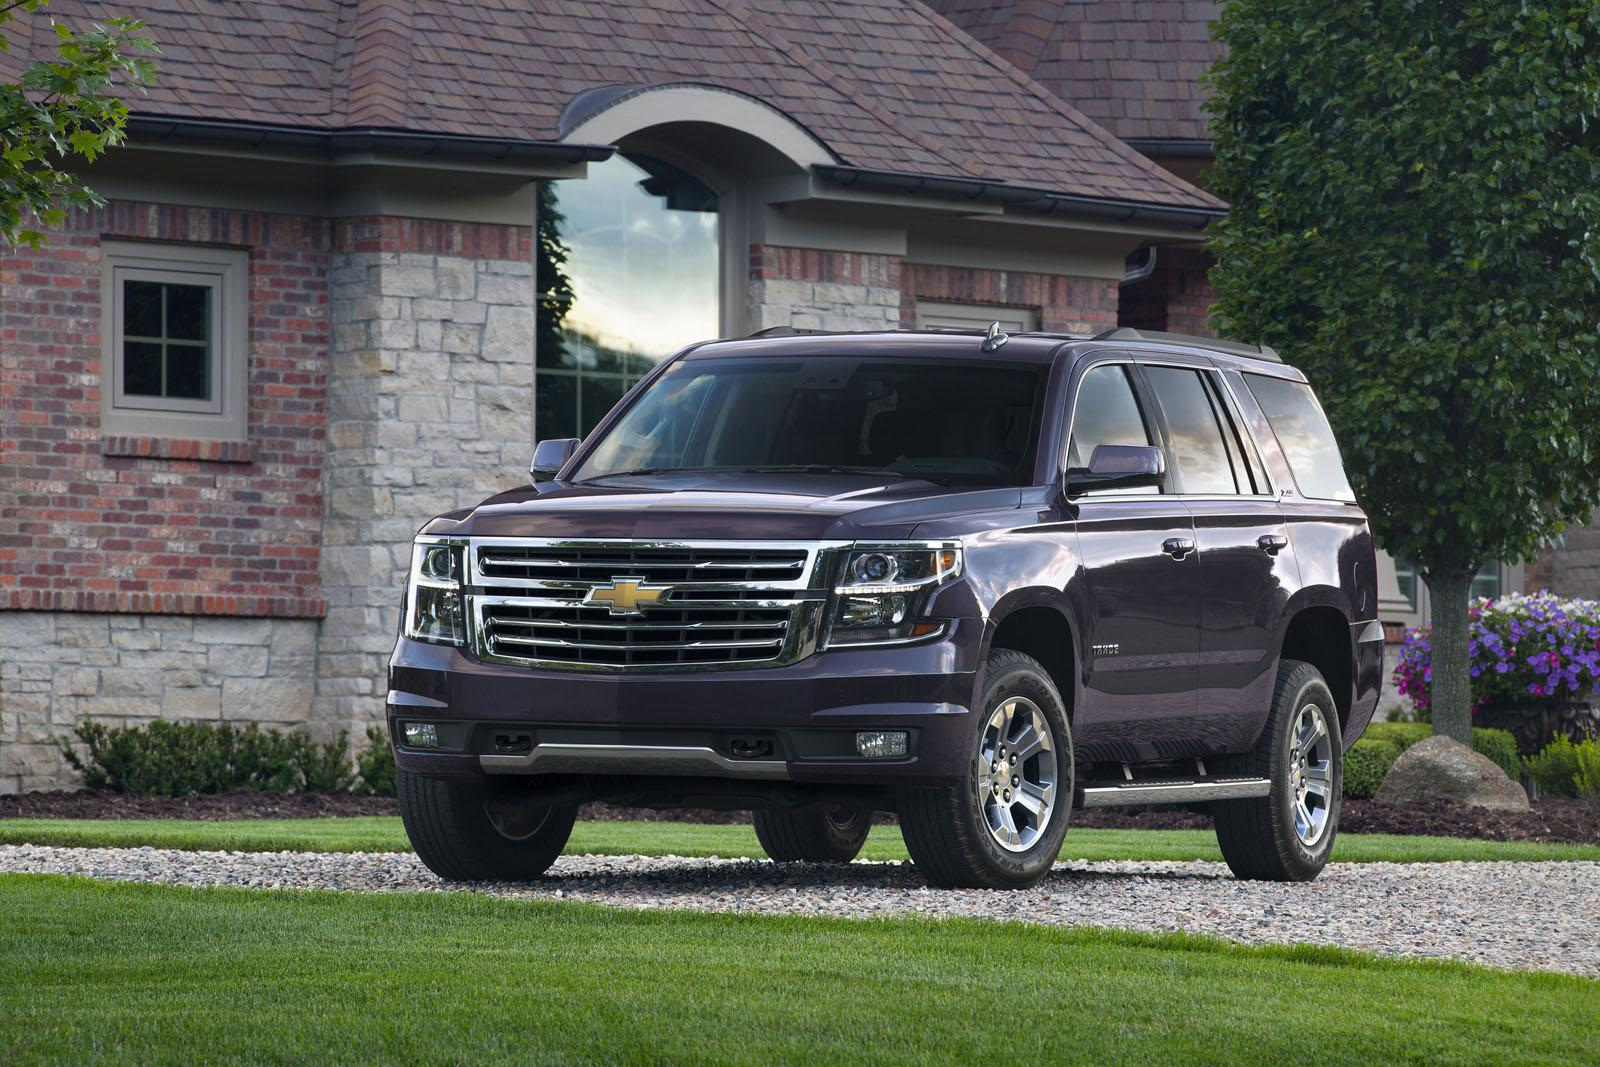 auction ended tahoe silverado title auctions on online tx carfinder for lot en vin sale dallas copart certificate chevrolet of auto in